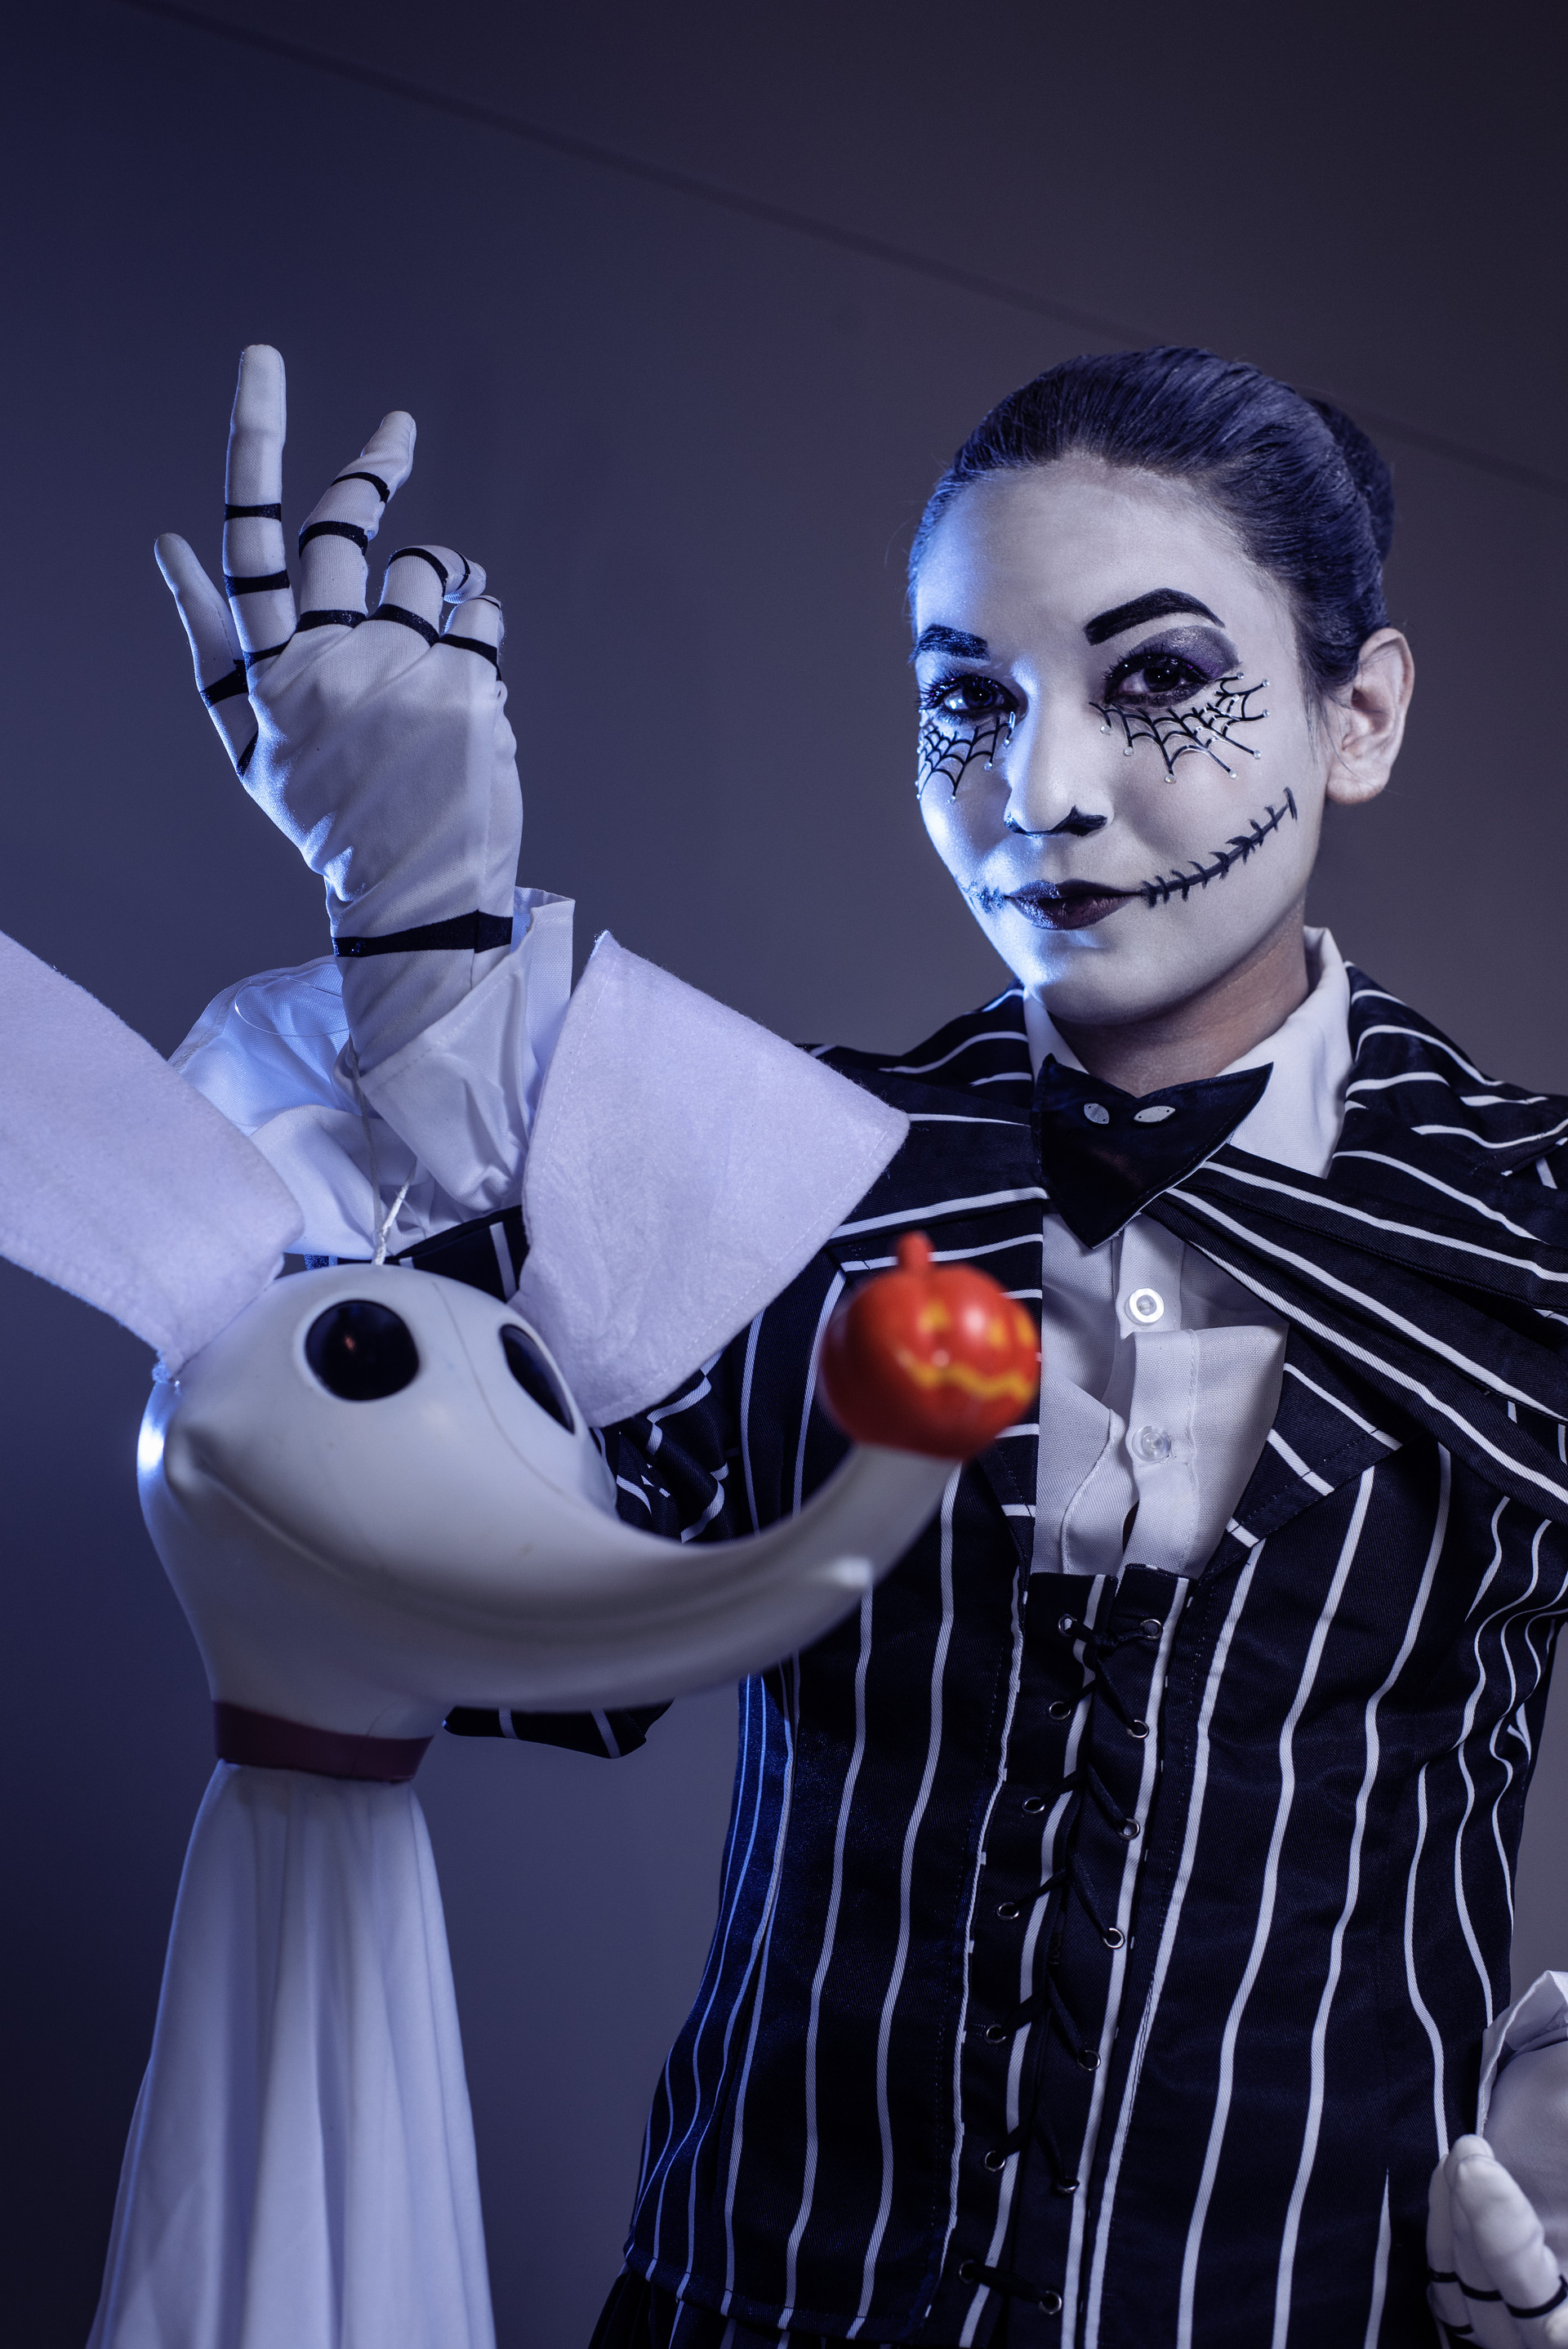 Cosplayer @elianathesaint as The Nightmare Before Christmas's Jack Skellington